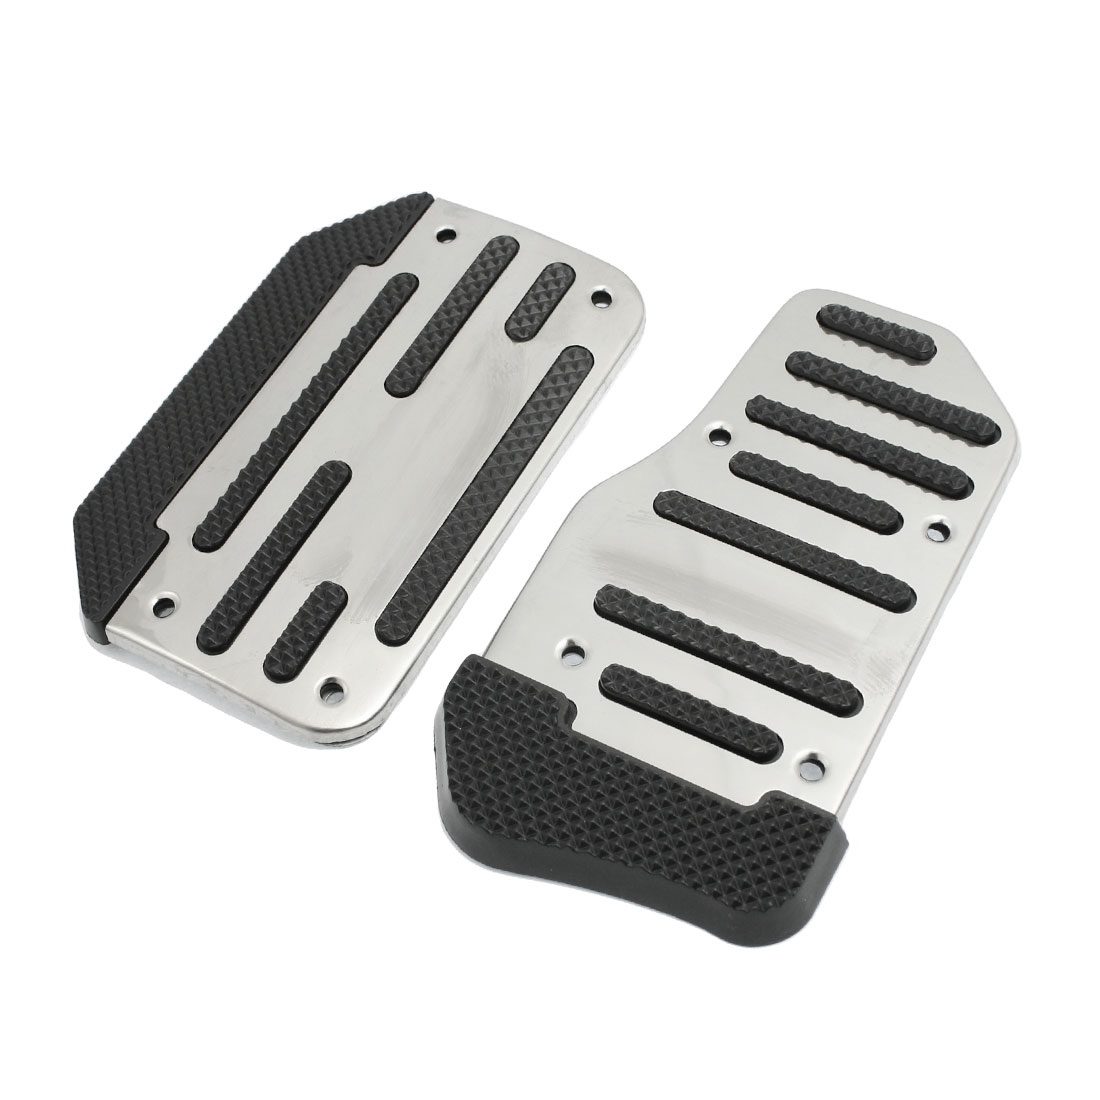 2 Pcs Silver Tone Black Nonslip Car Automatic Gas Brake Pedal Cover